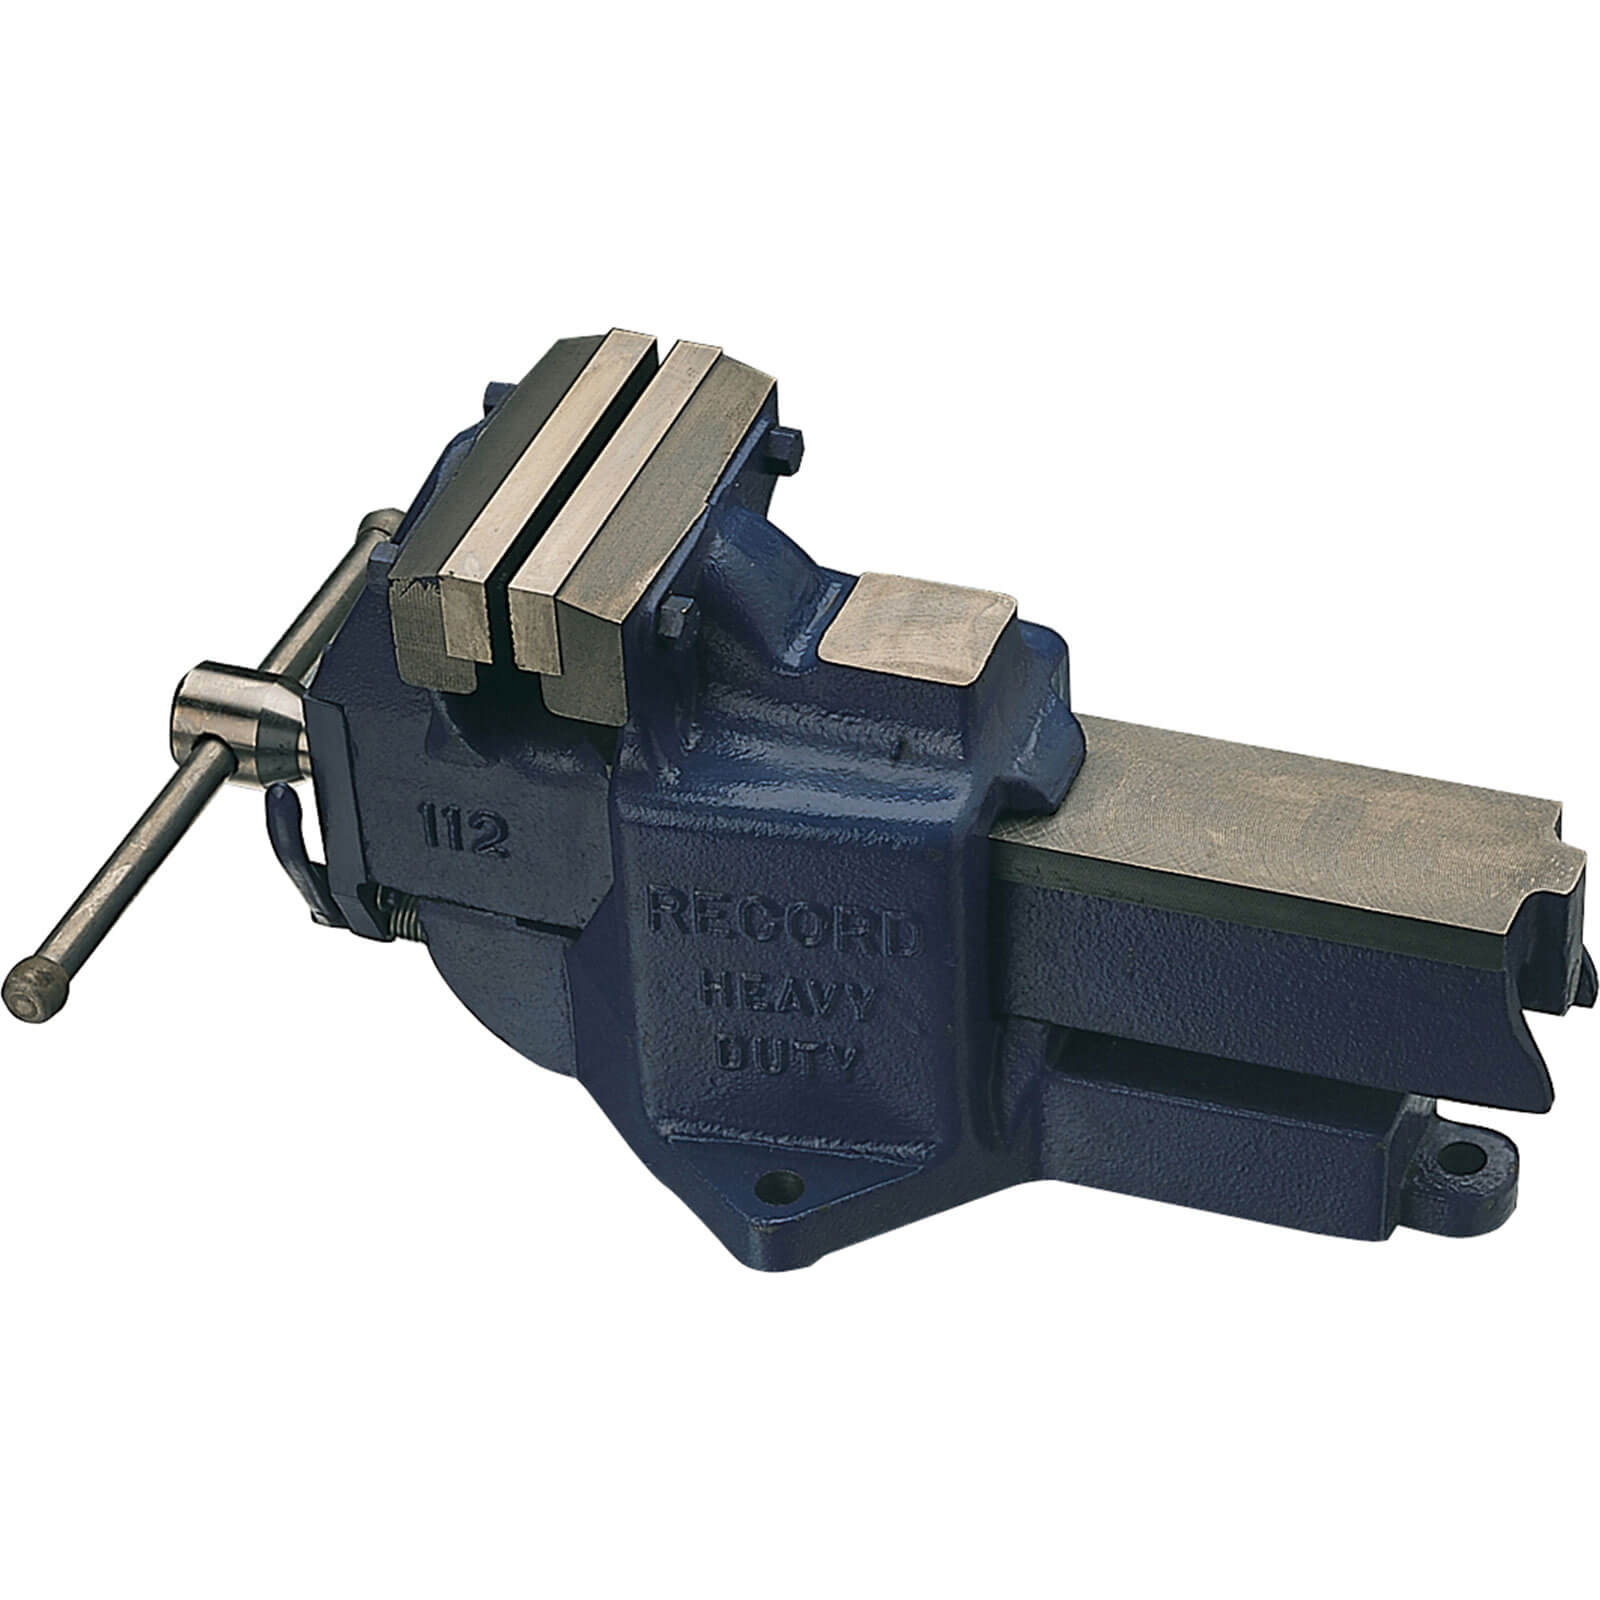 Image of Irwin Record Engineers Heavy Duty Quick Release Vice 150mm